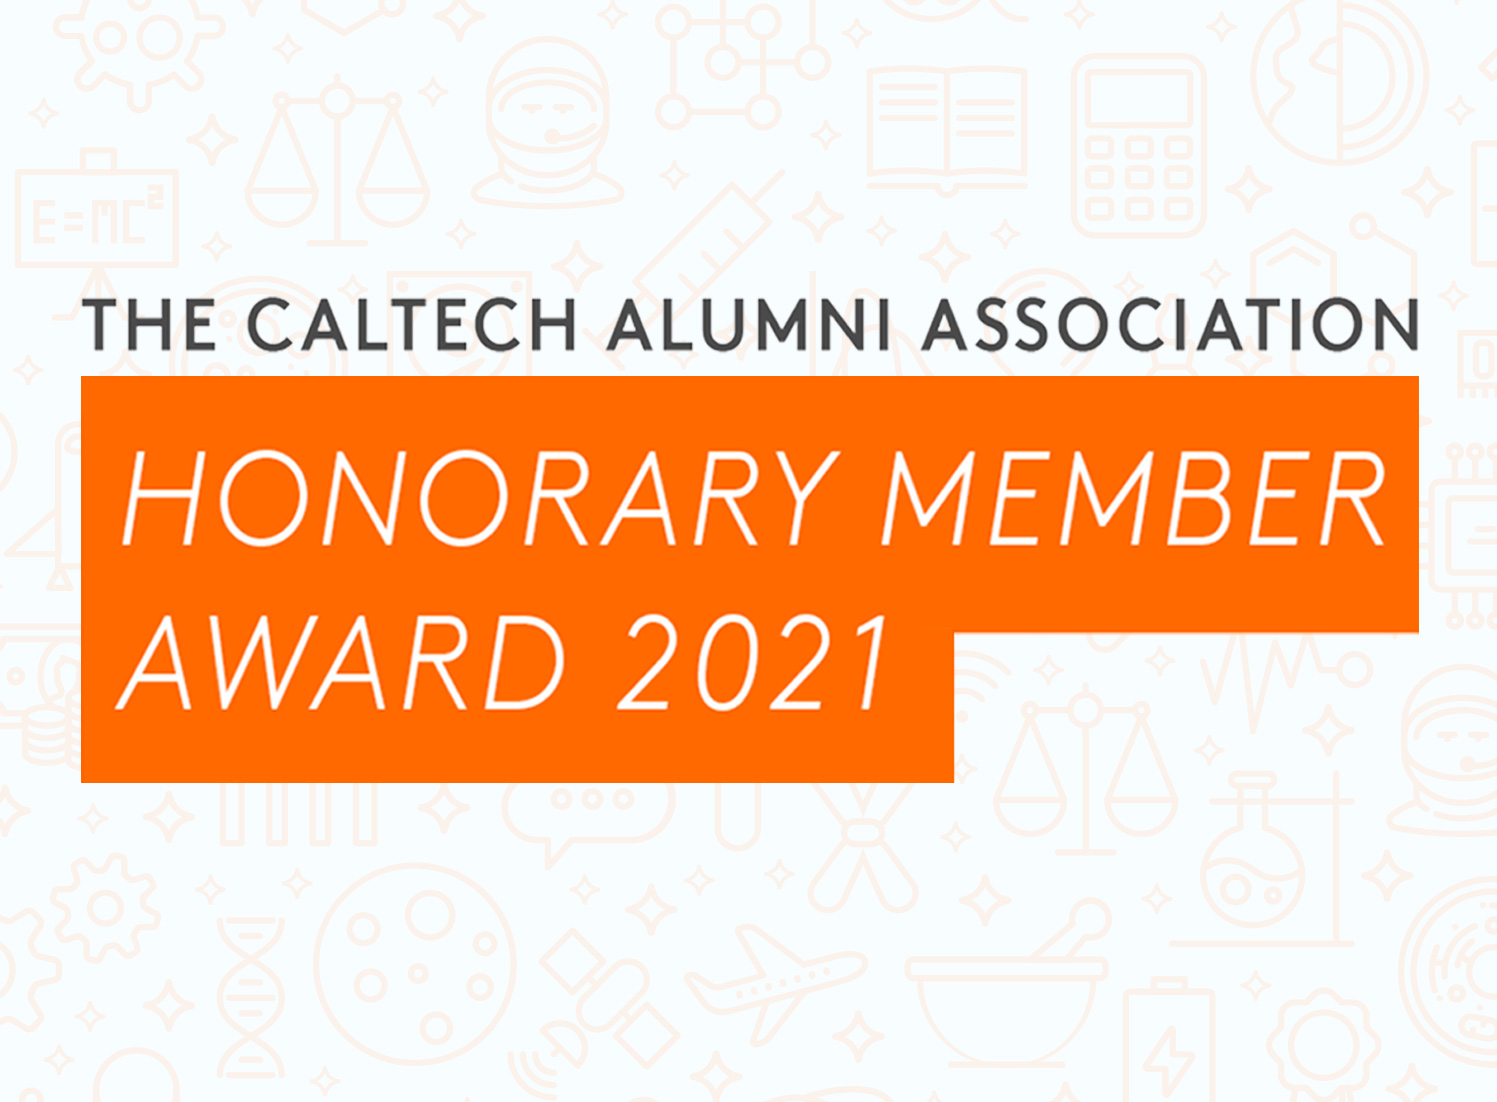 Honorary Member Award 2021 Nominations